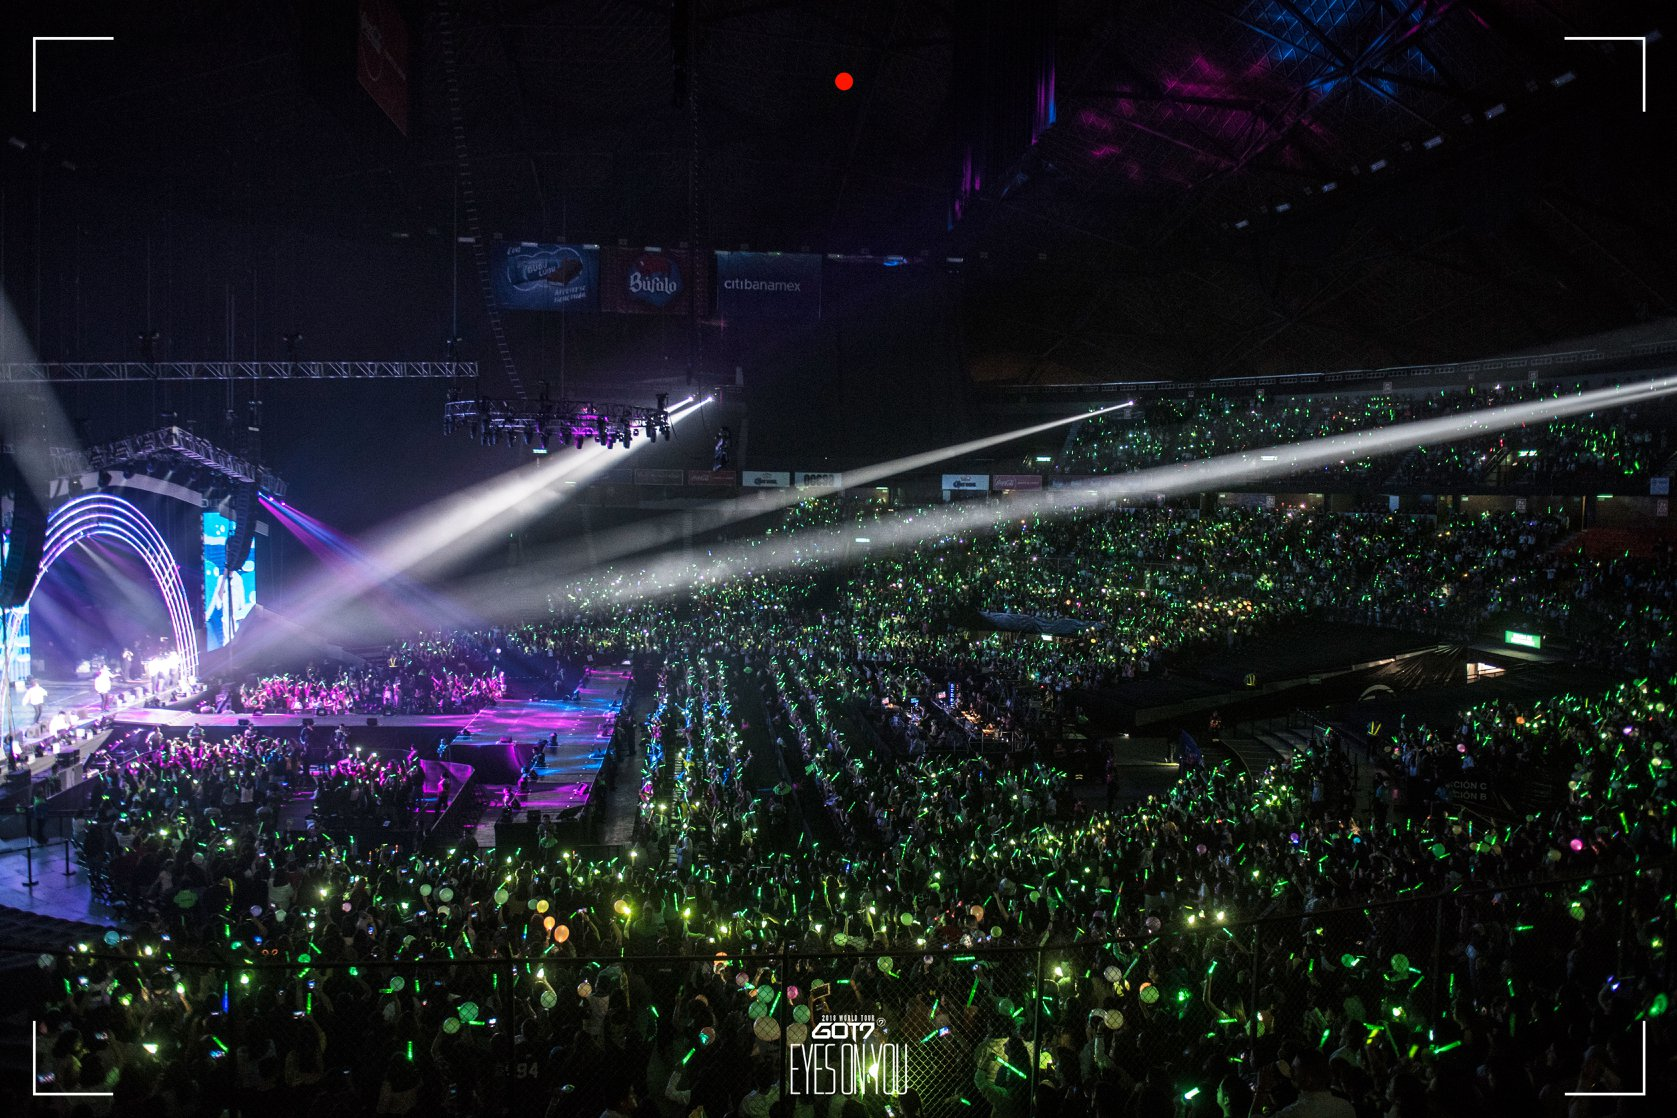 3 Reasons Why K Pop Fans Want To Be Part Of The Lightstick